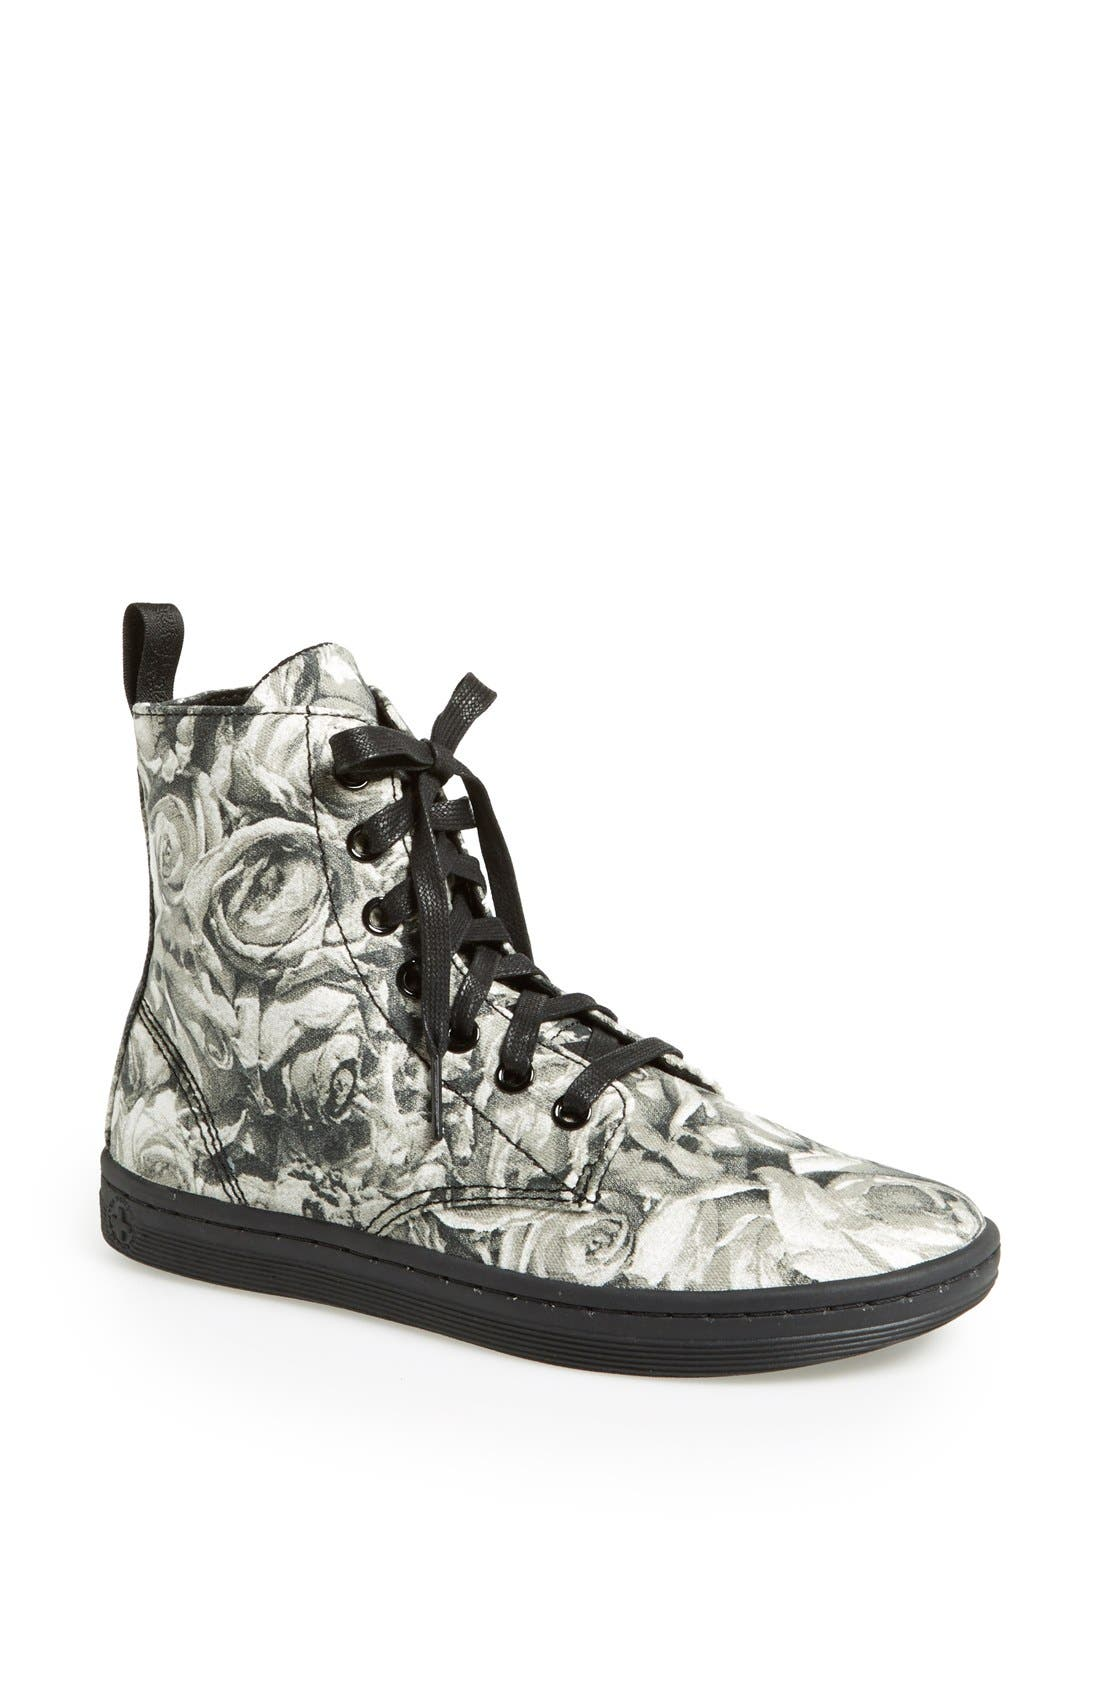 Alternate Image 1 Selected - Dr. Martens 'Hackney' Boot